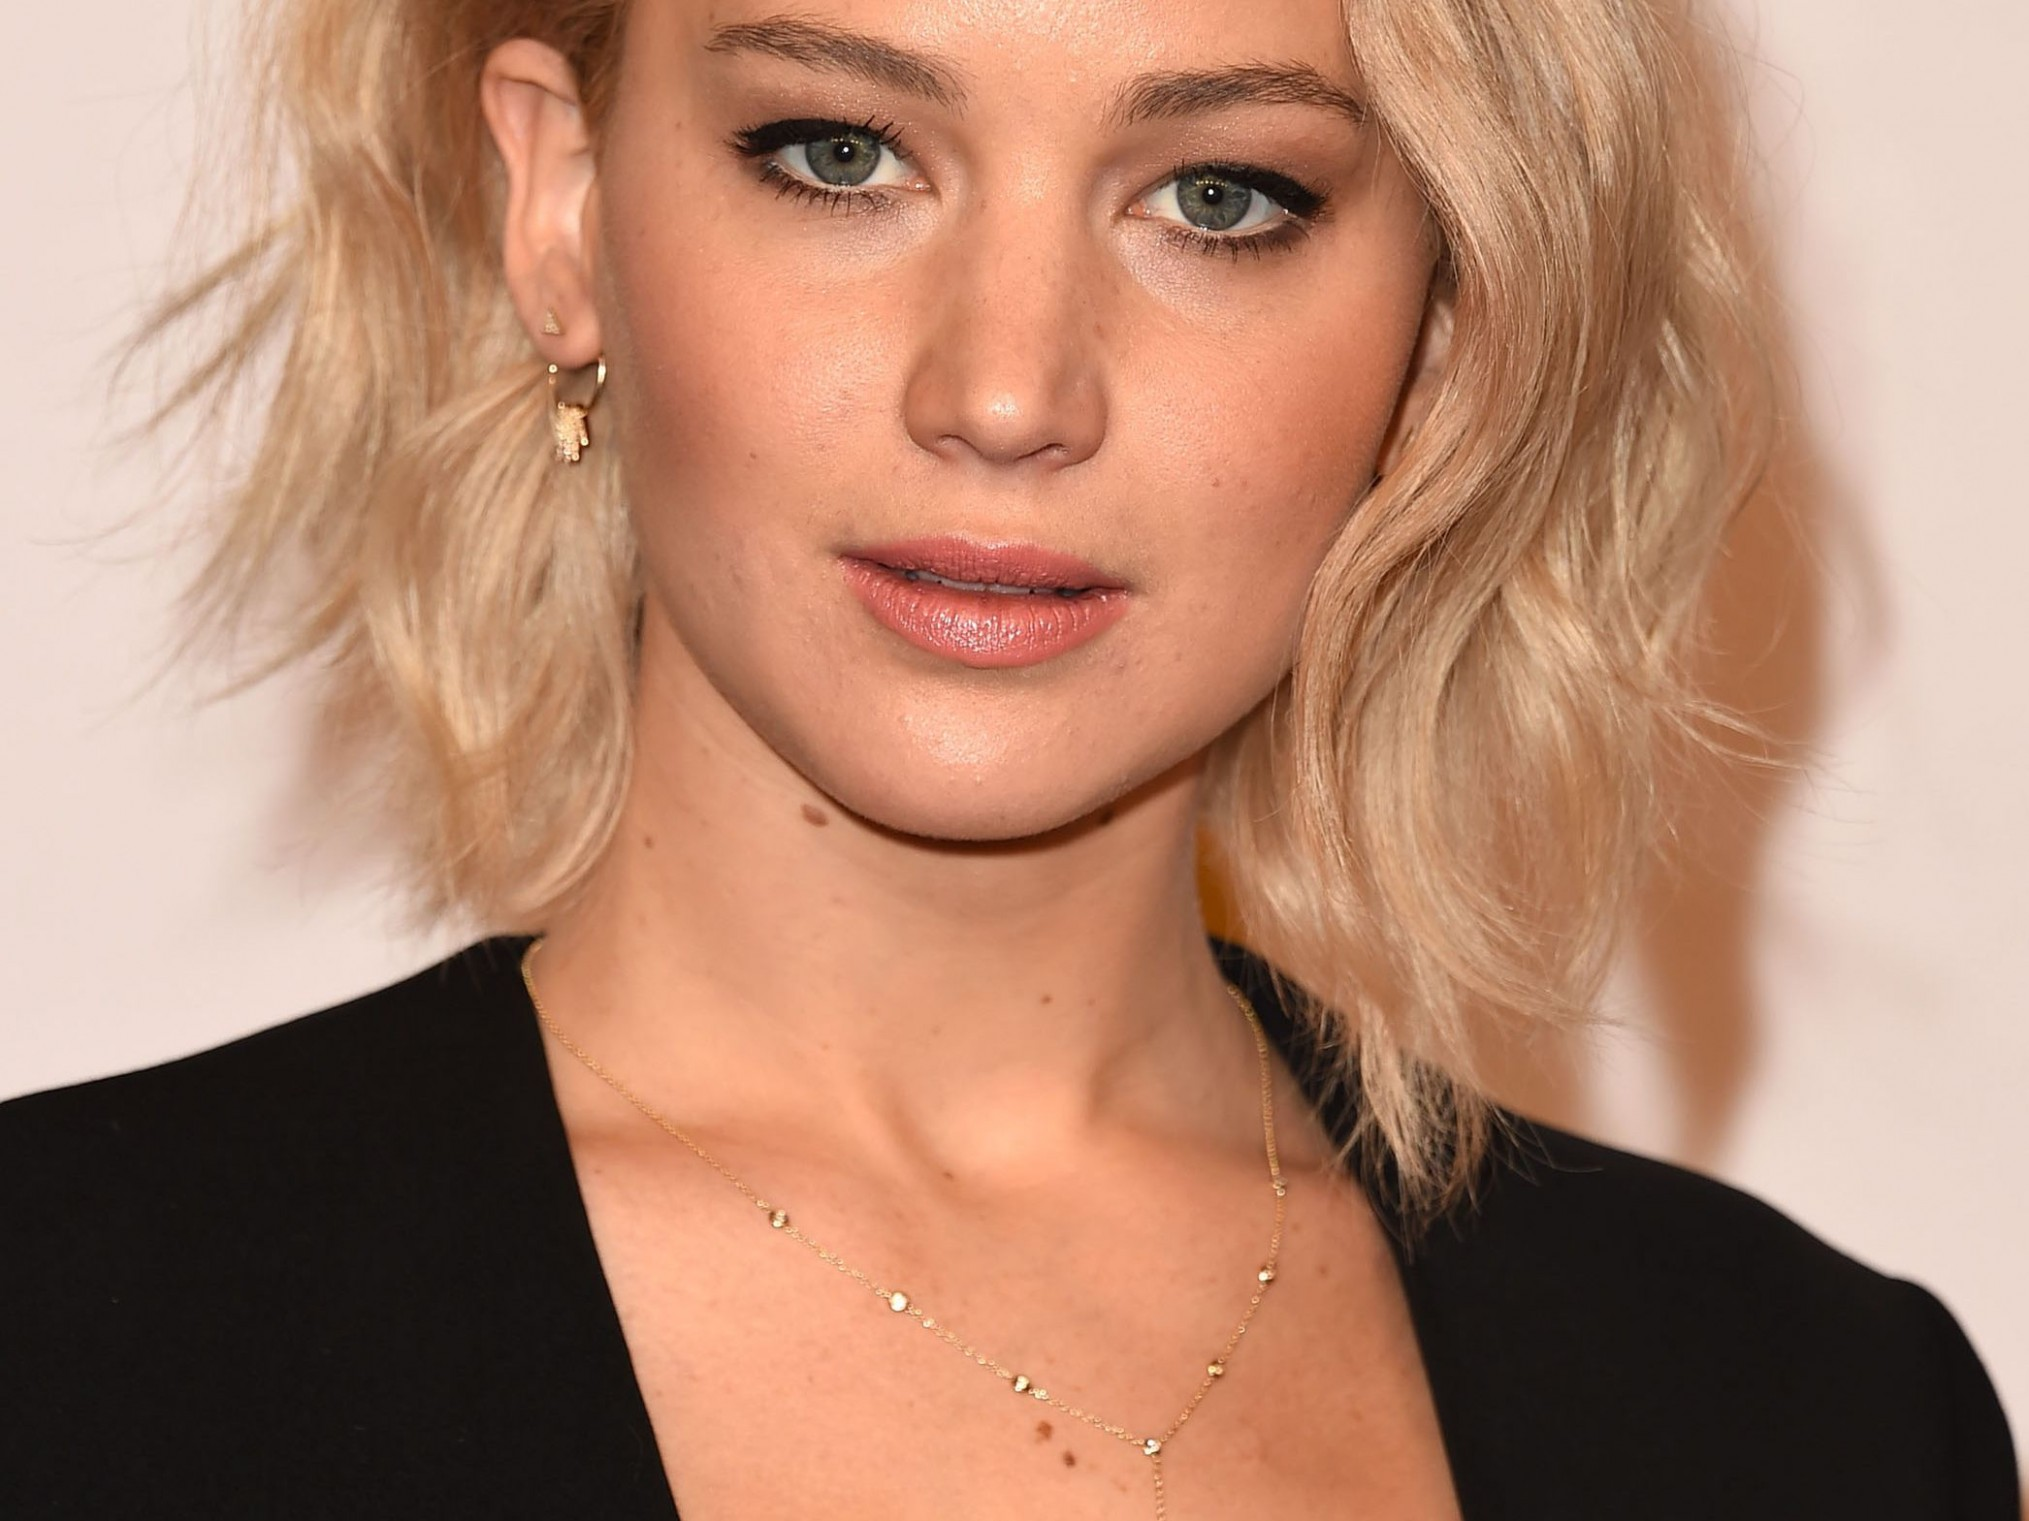 9 Flattering Short Hairstyles For Round Face Shapes Hairstyles For Round Faces